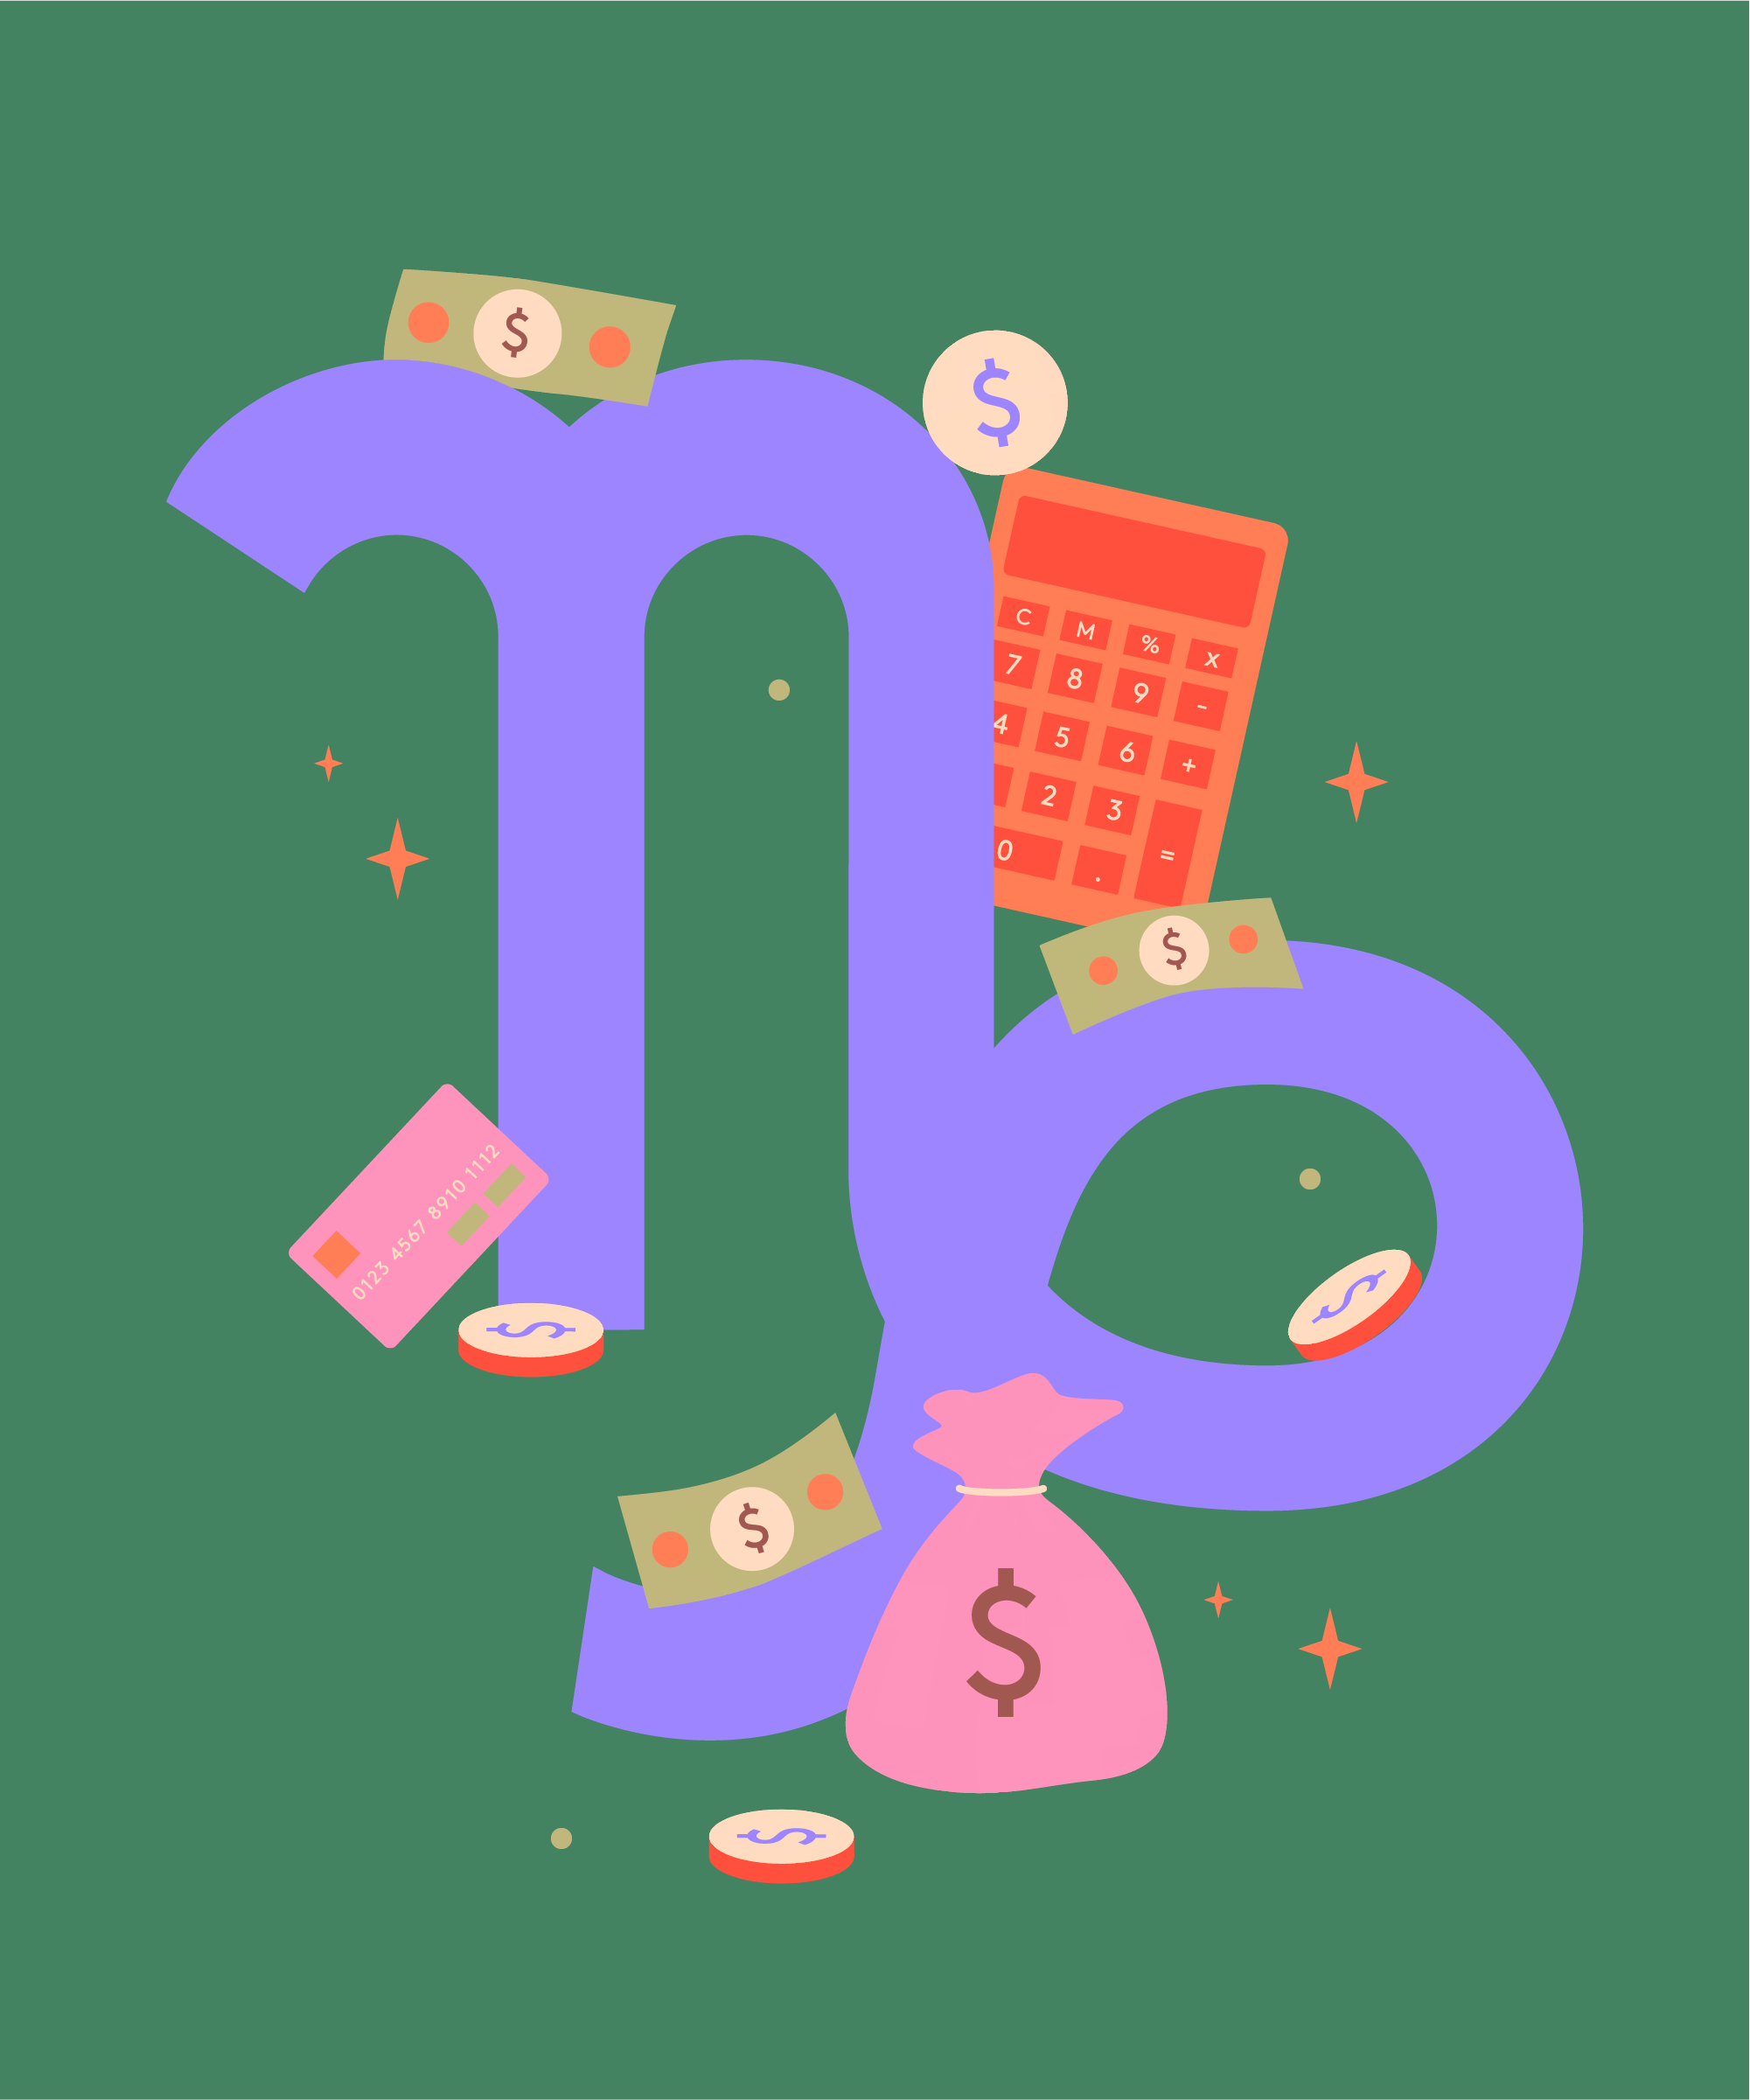 Money Horoscope 2019 Financial Forecast By Zodiac Sign